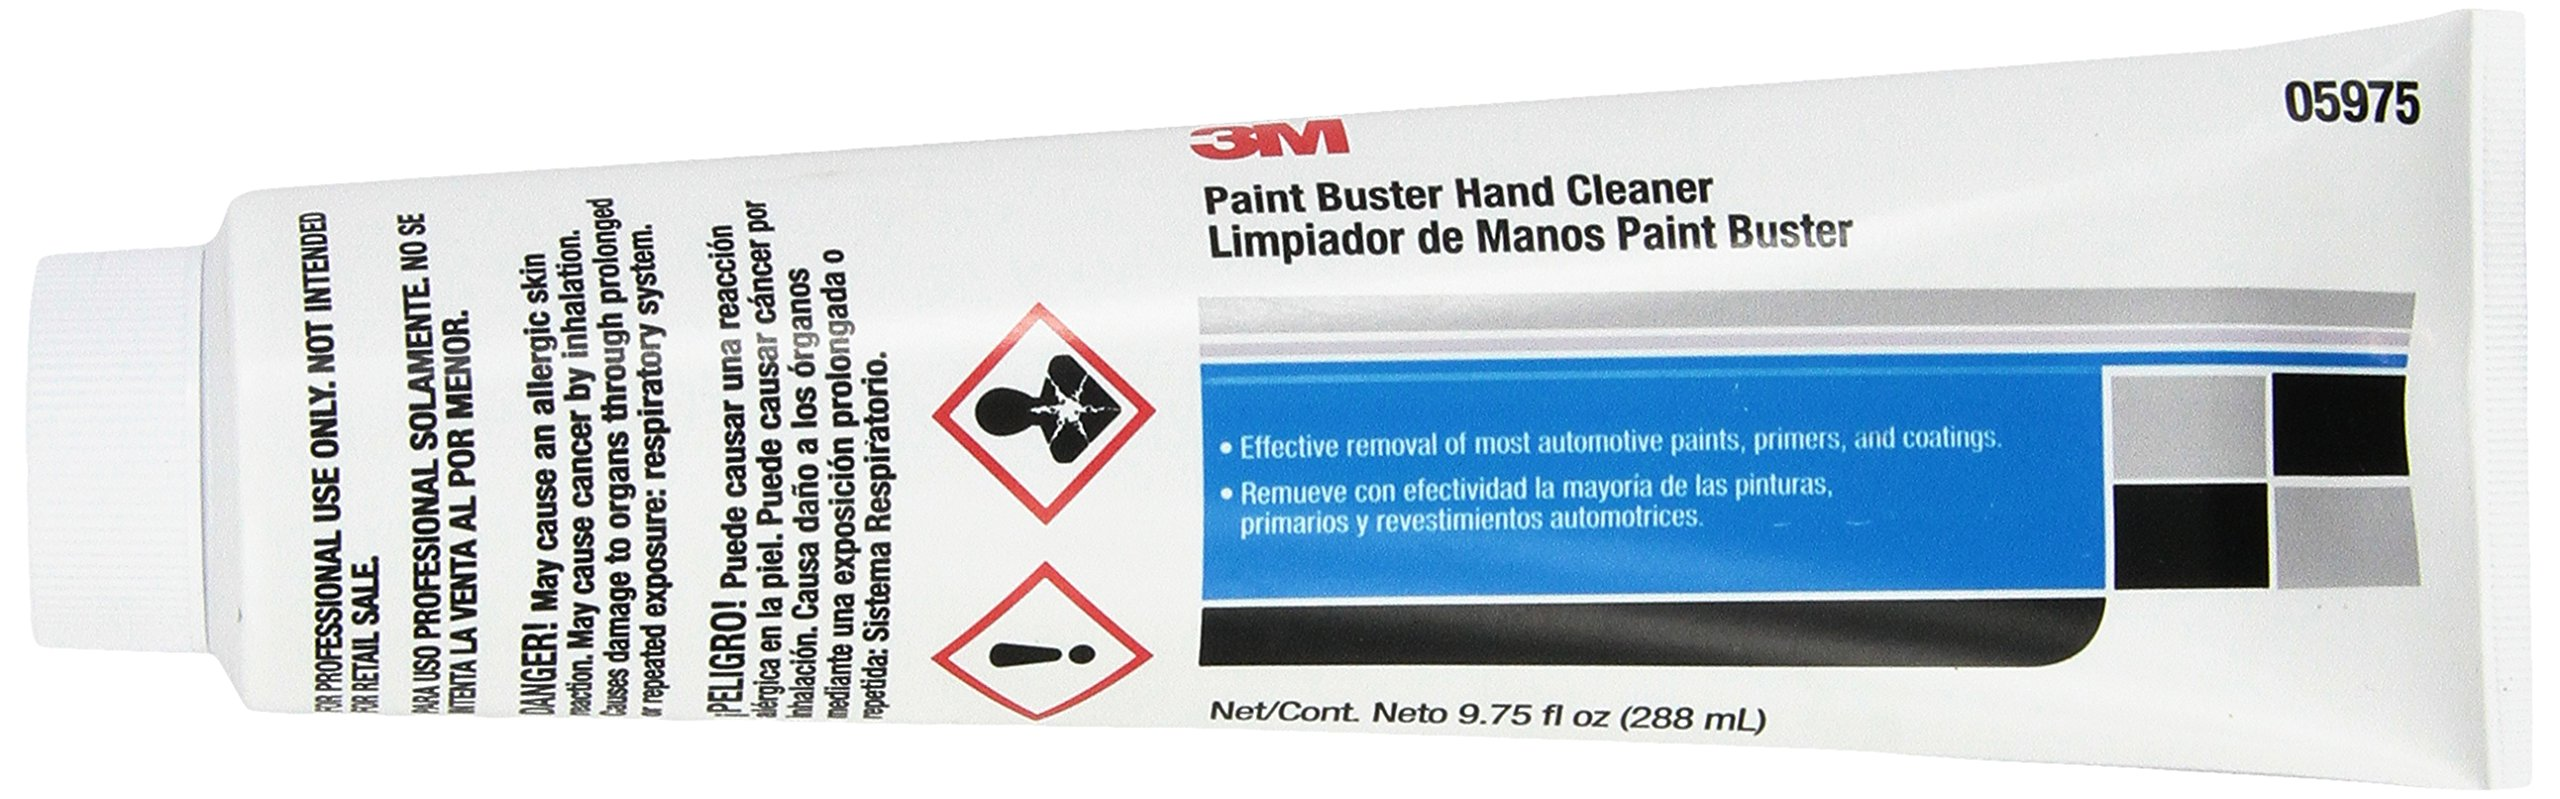 3M 05975 Paint Buster Hand Cleaner - 9.75 fl. oz.